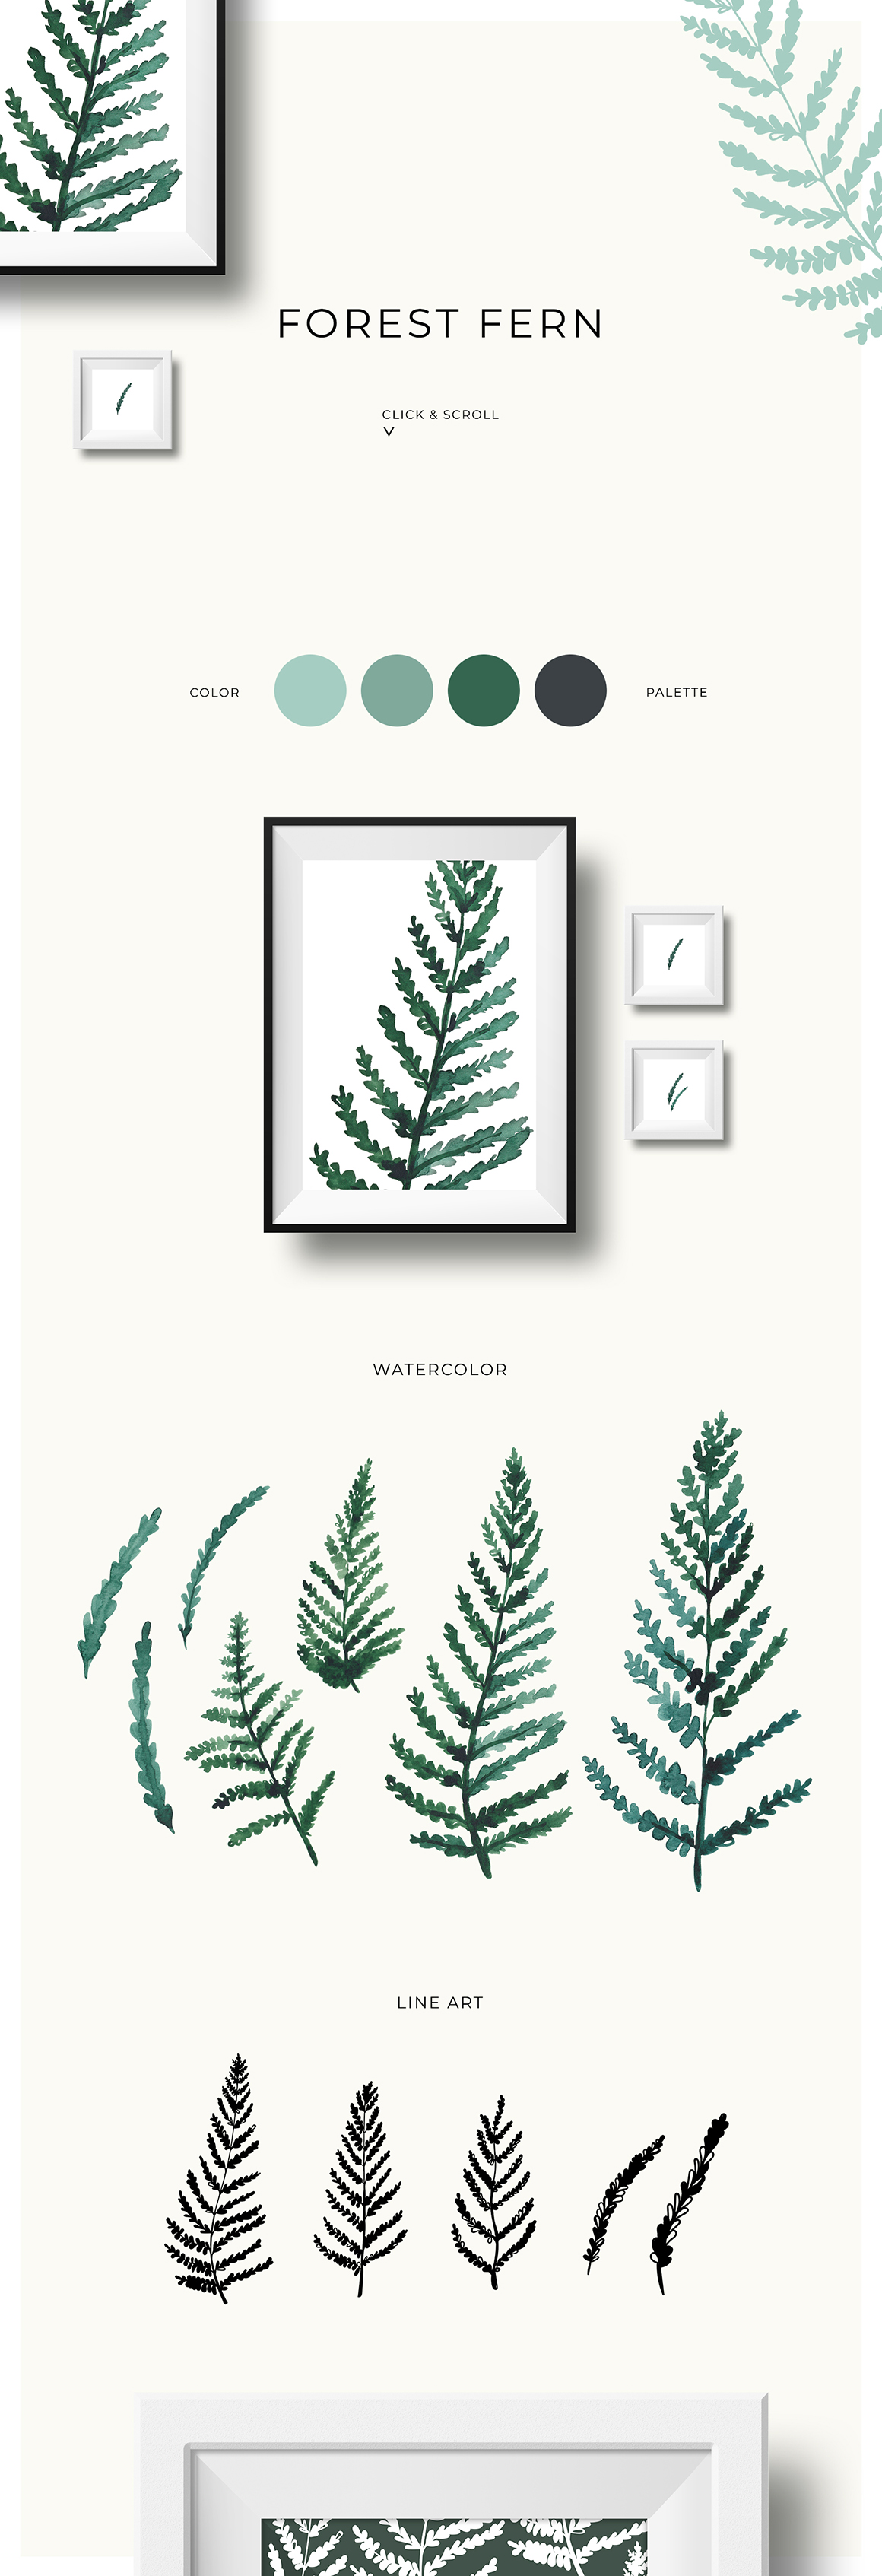 Trendy Greenery: Watercolor & Line Art Collection